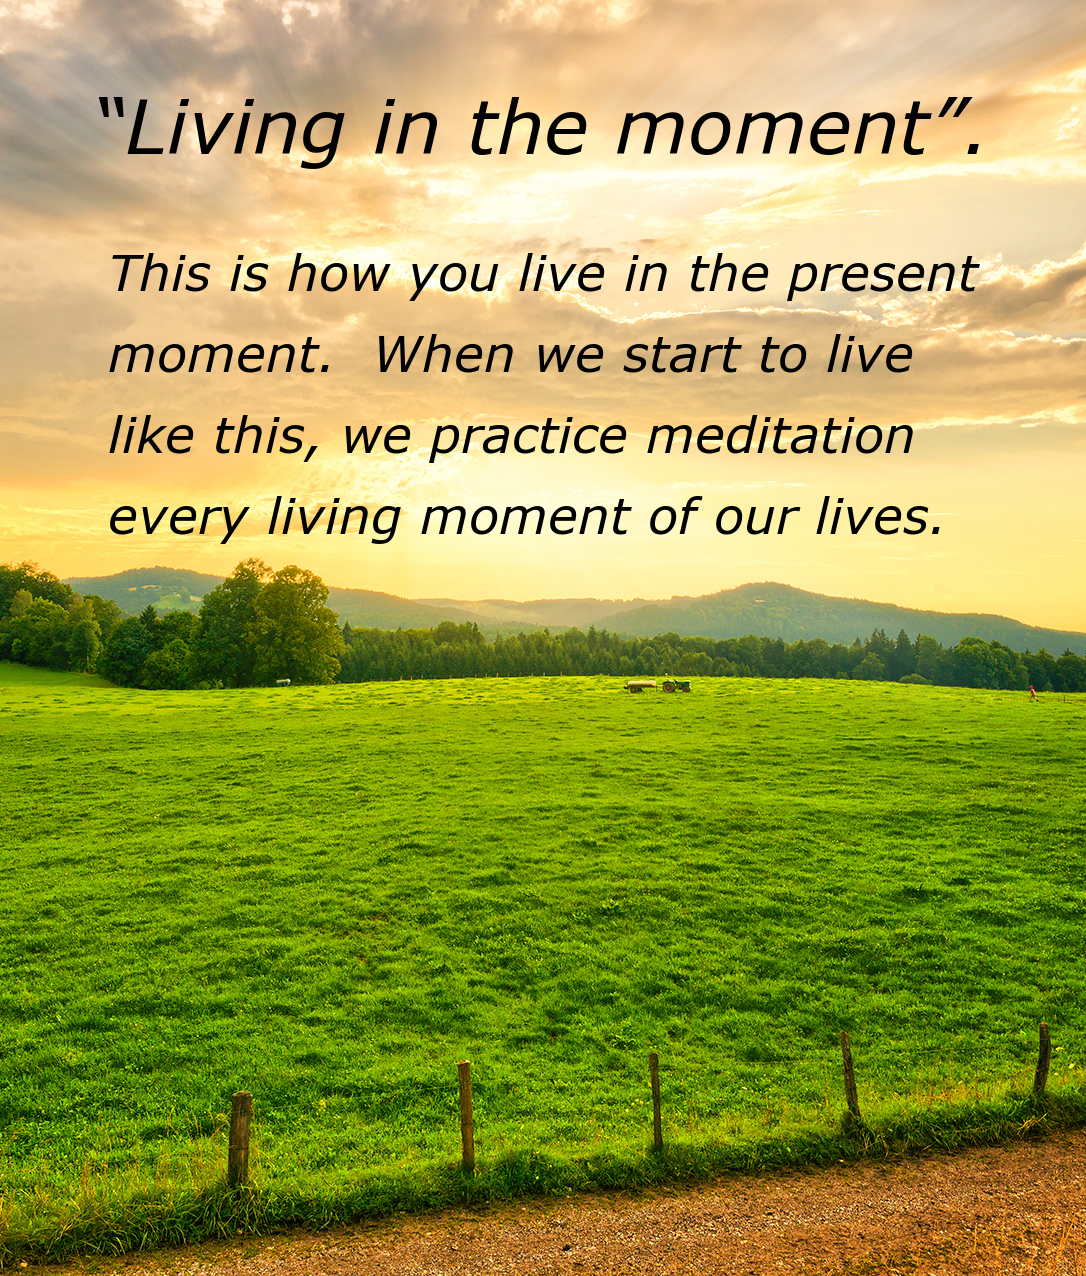 http://www.promotehealthwellness.com/wp-content/uploads/2012/07/Benefits-of-meditation1.jpg